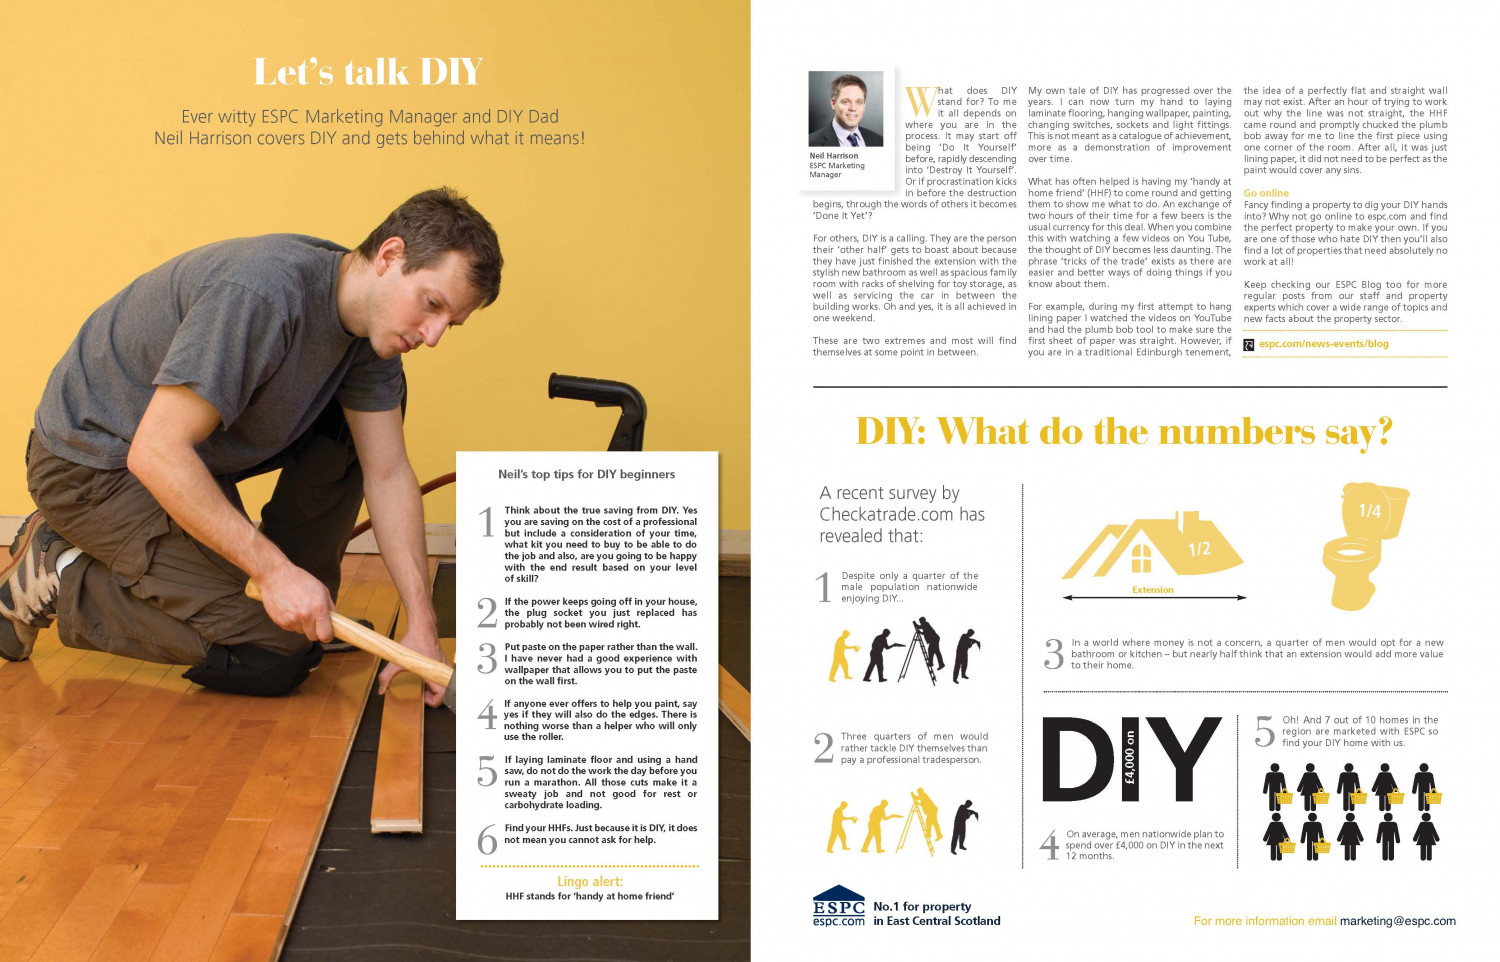 Let's talk DIY Infographic